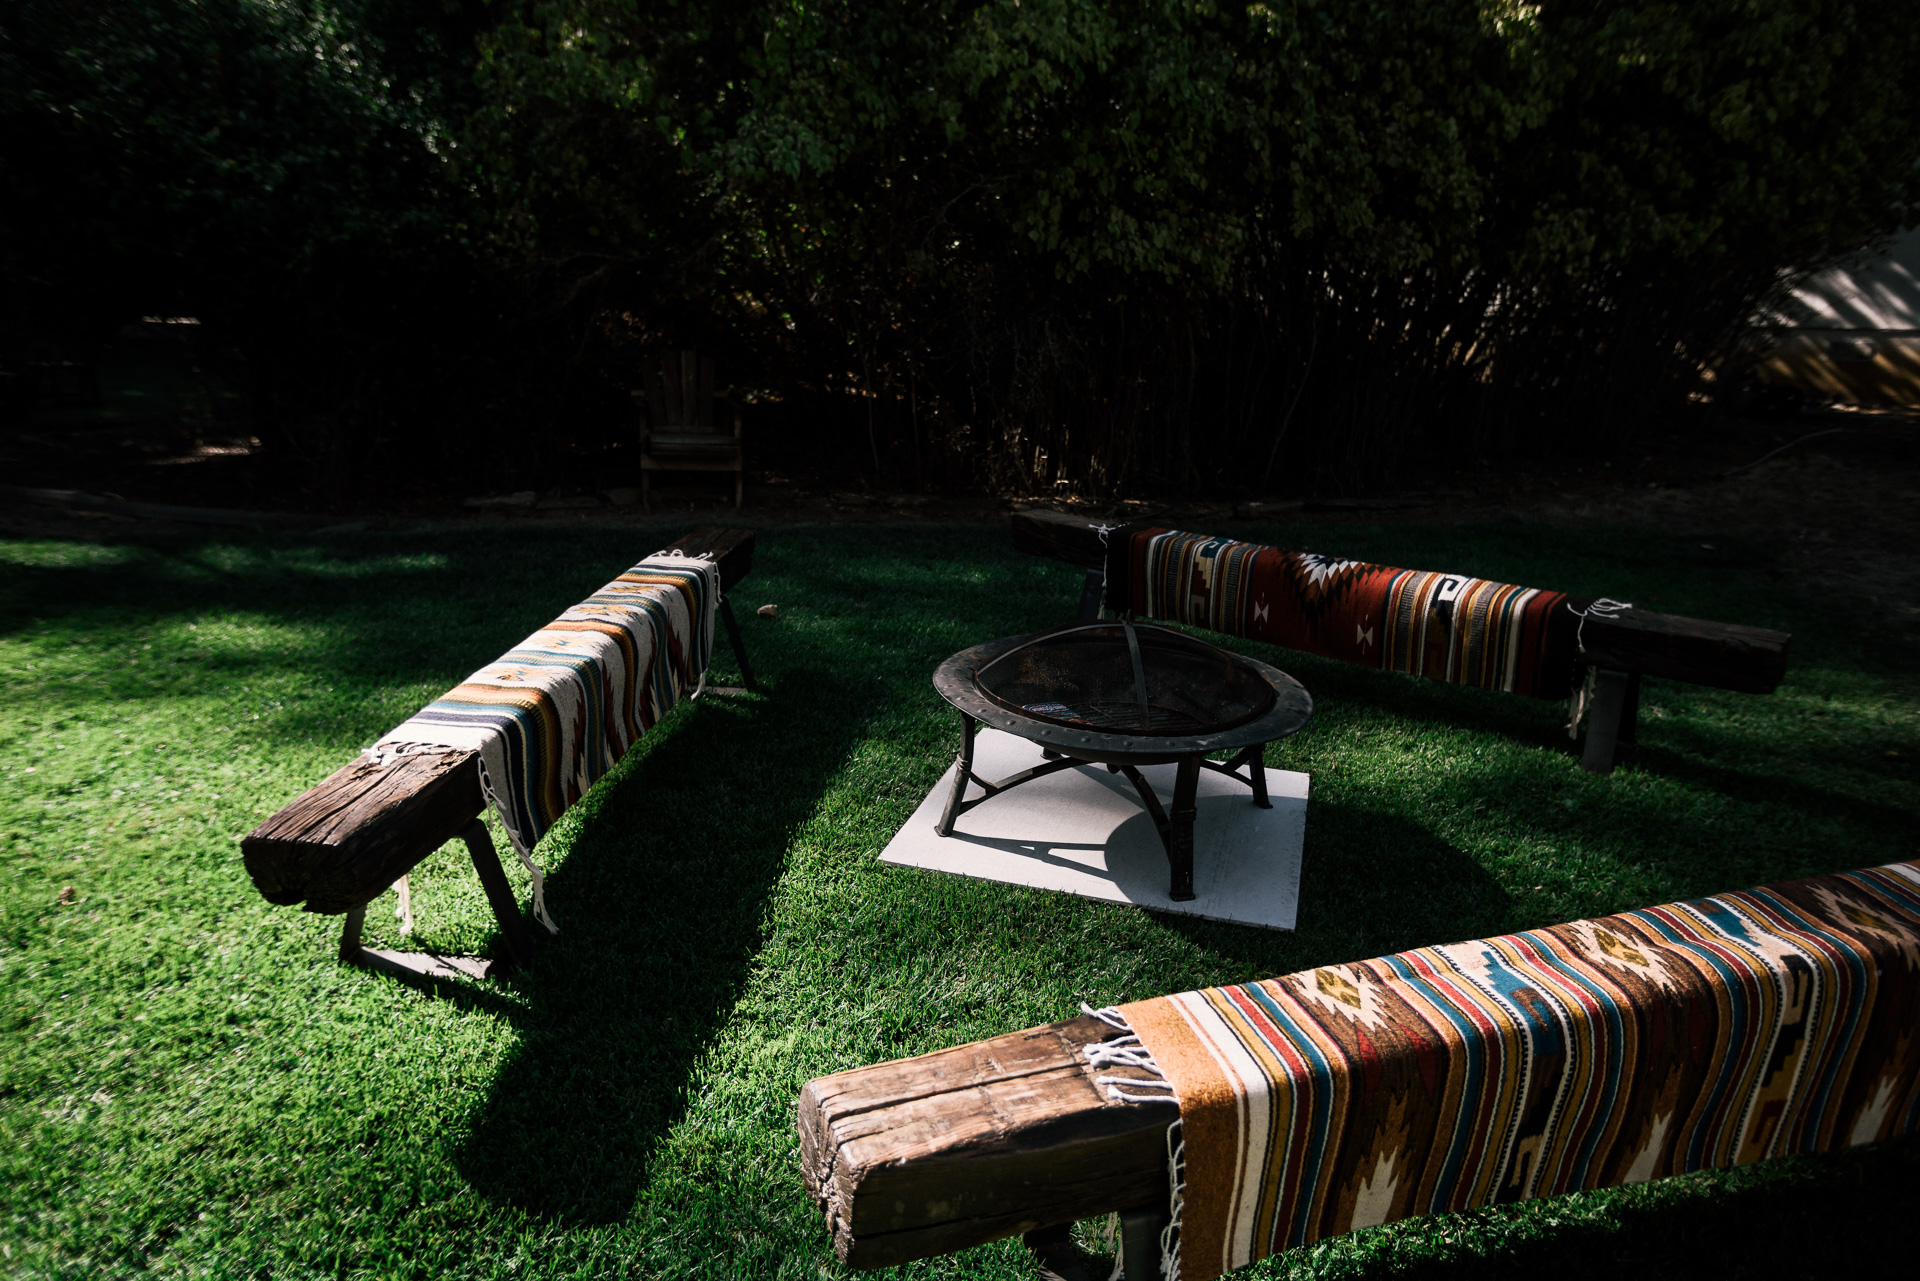 railroad tie benches around a firepit rustic decor shot by wedding photographer at the charming St. George Hotel in Volcano California